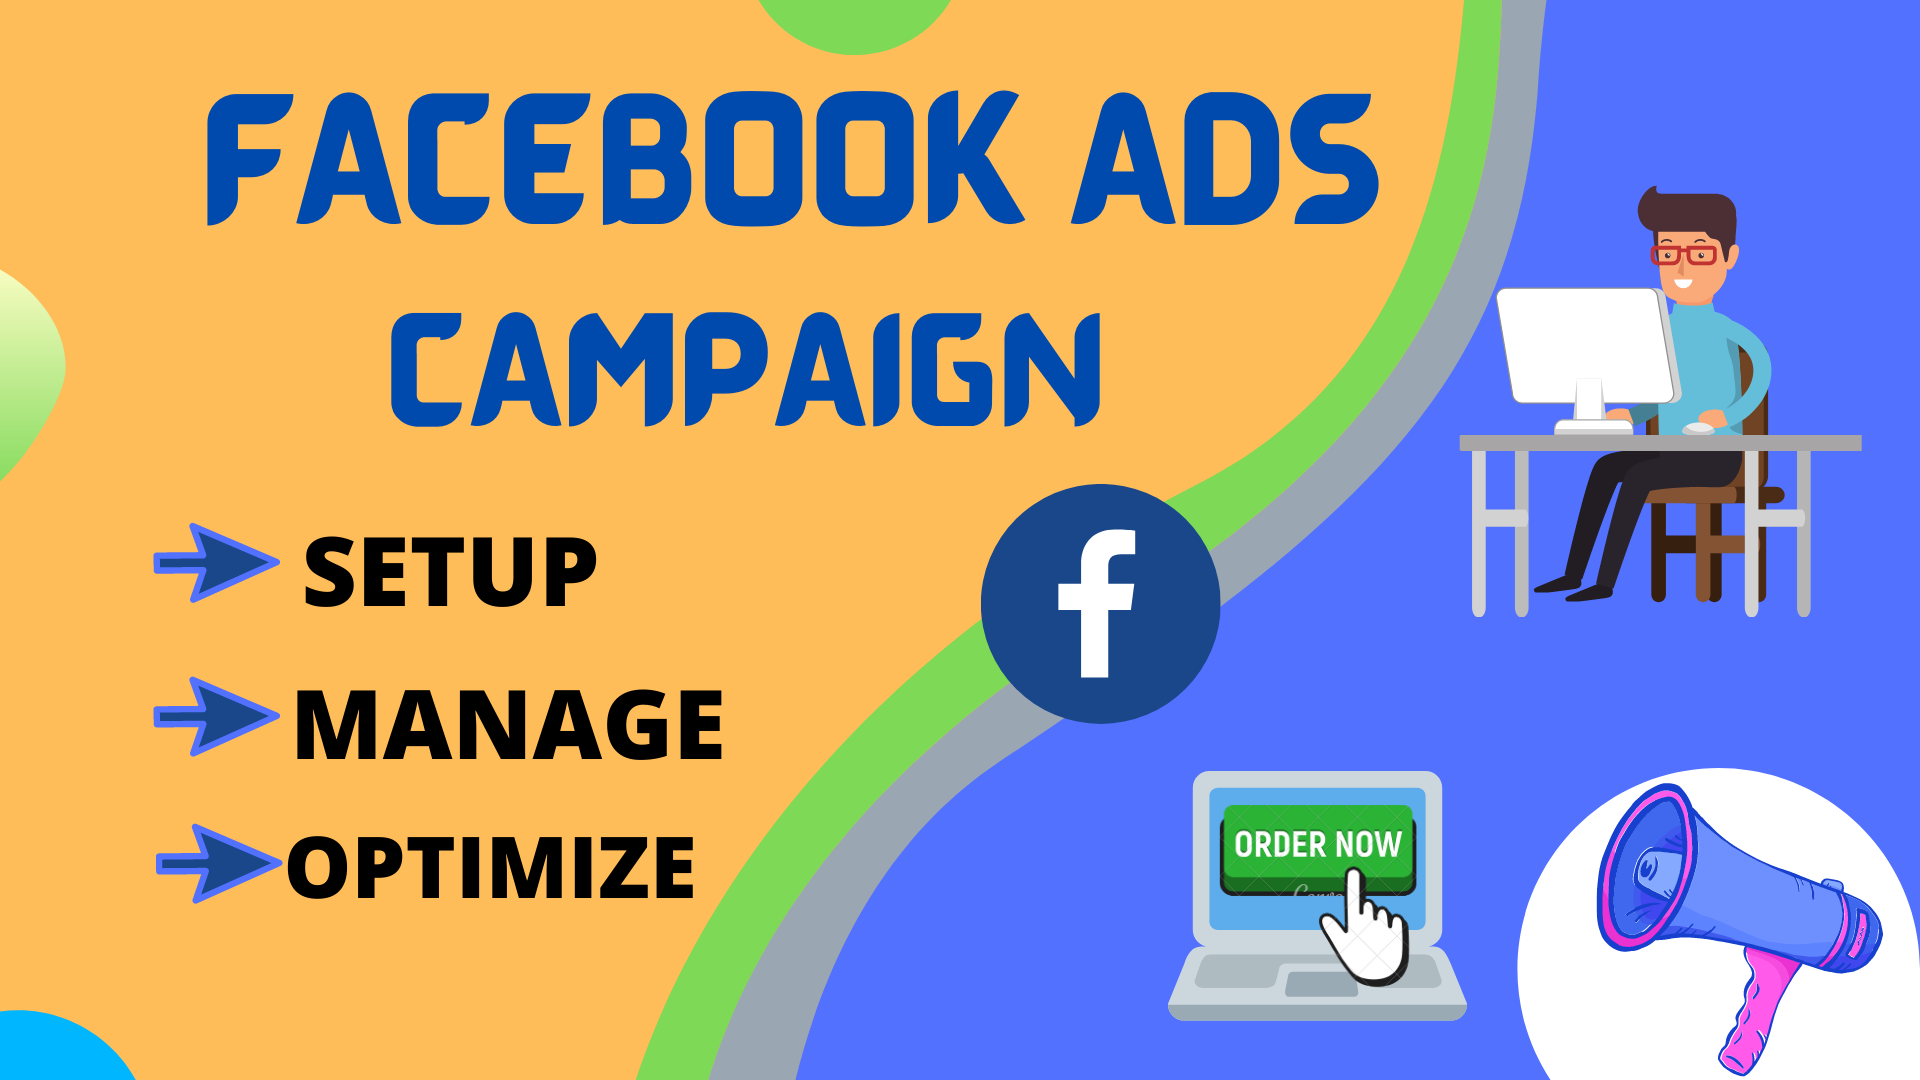 I will setup manage and optimize facebook ads campaign